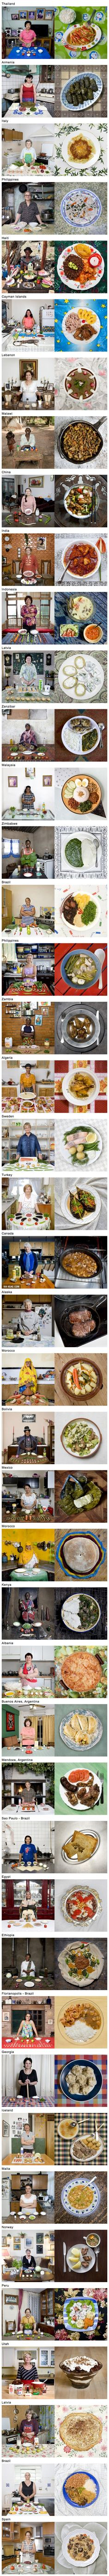 Grandma's cooking from around the world